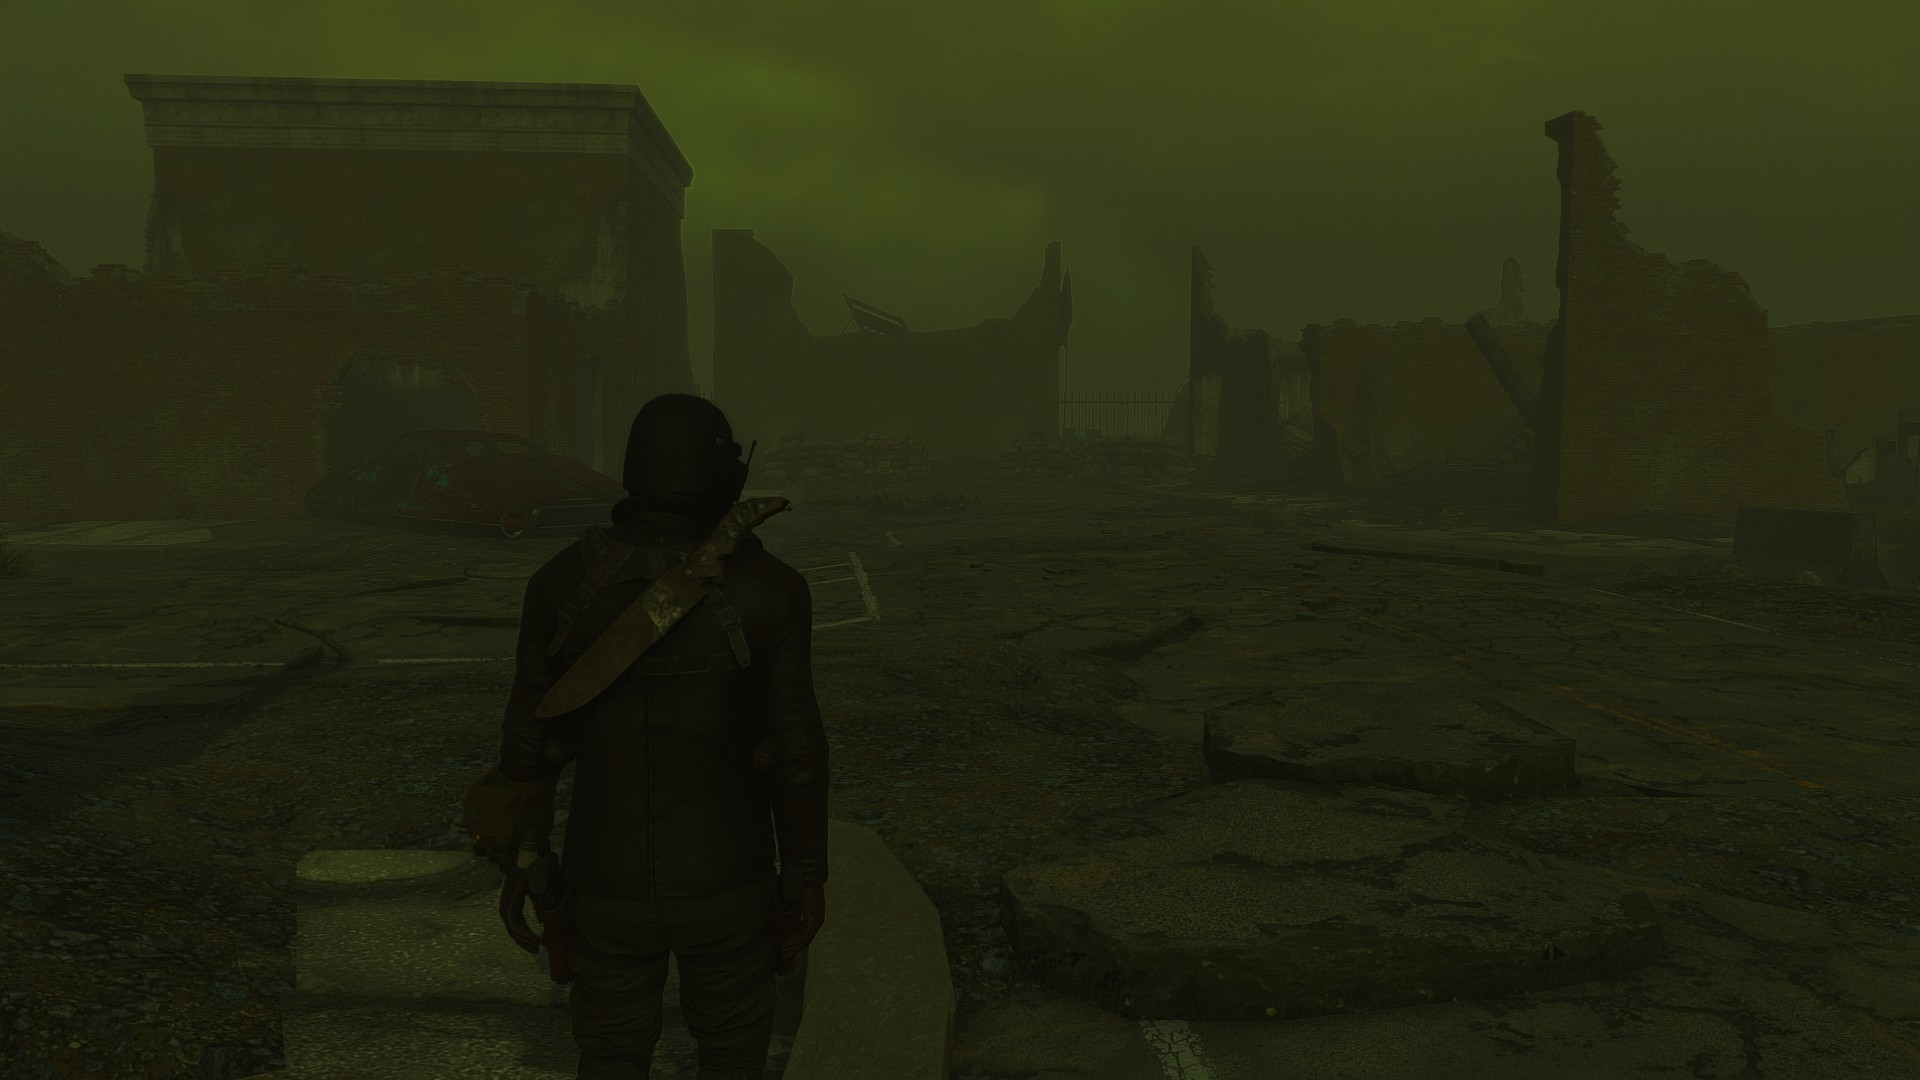 Fallout Las Vegas Map.Modder Is Recreating The Entire Map Of Fallout New Vegas In Fallout